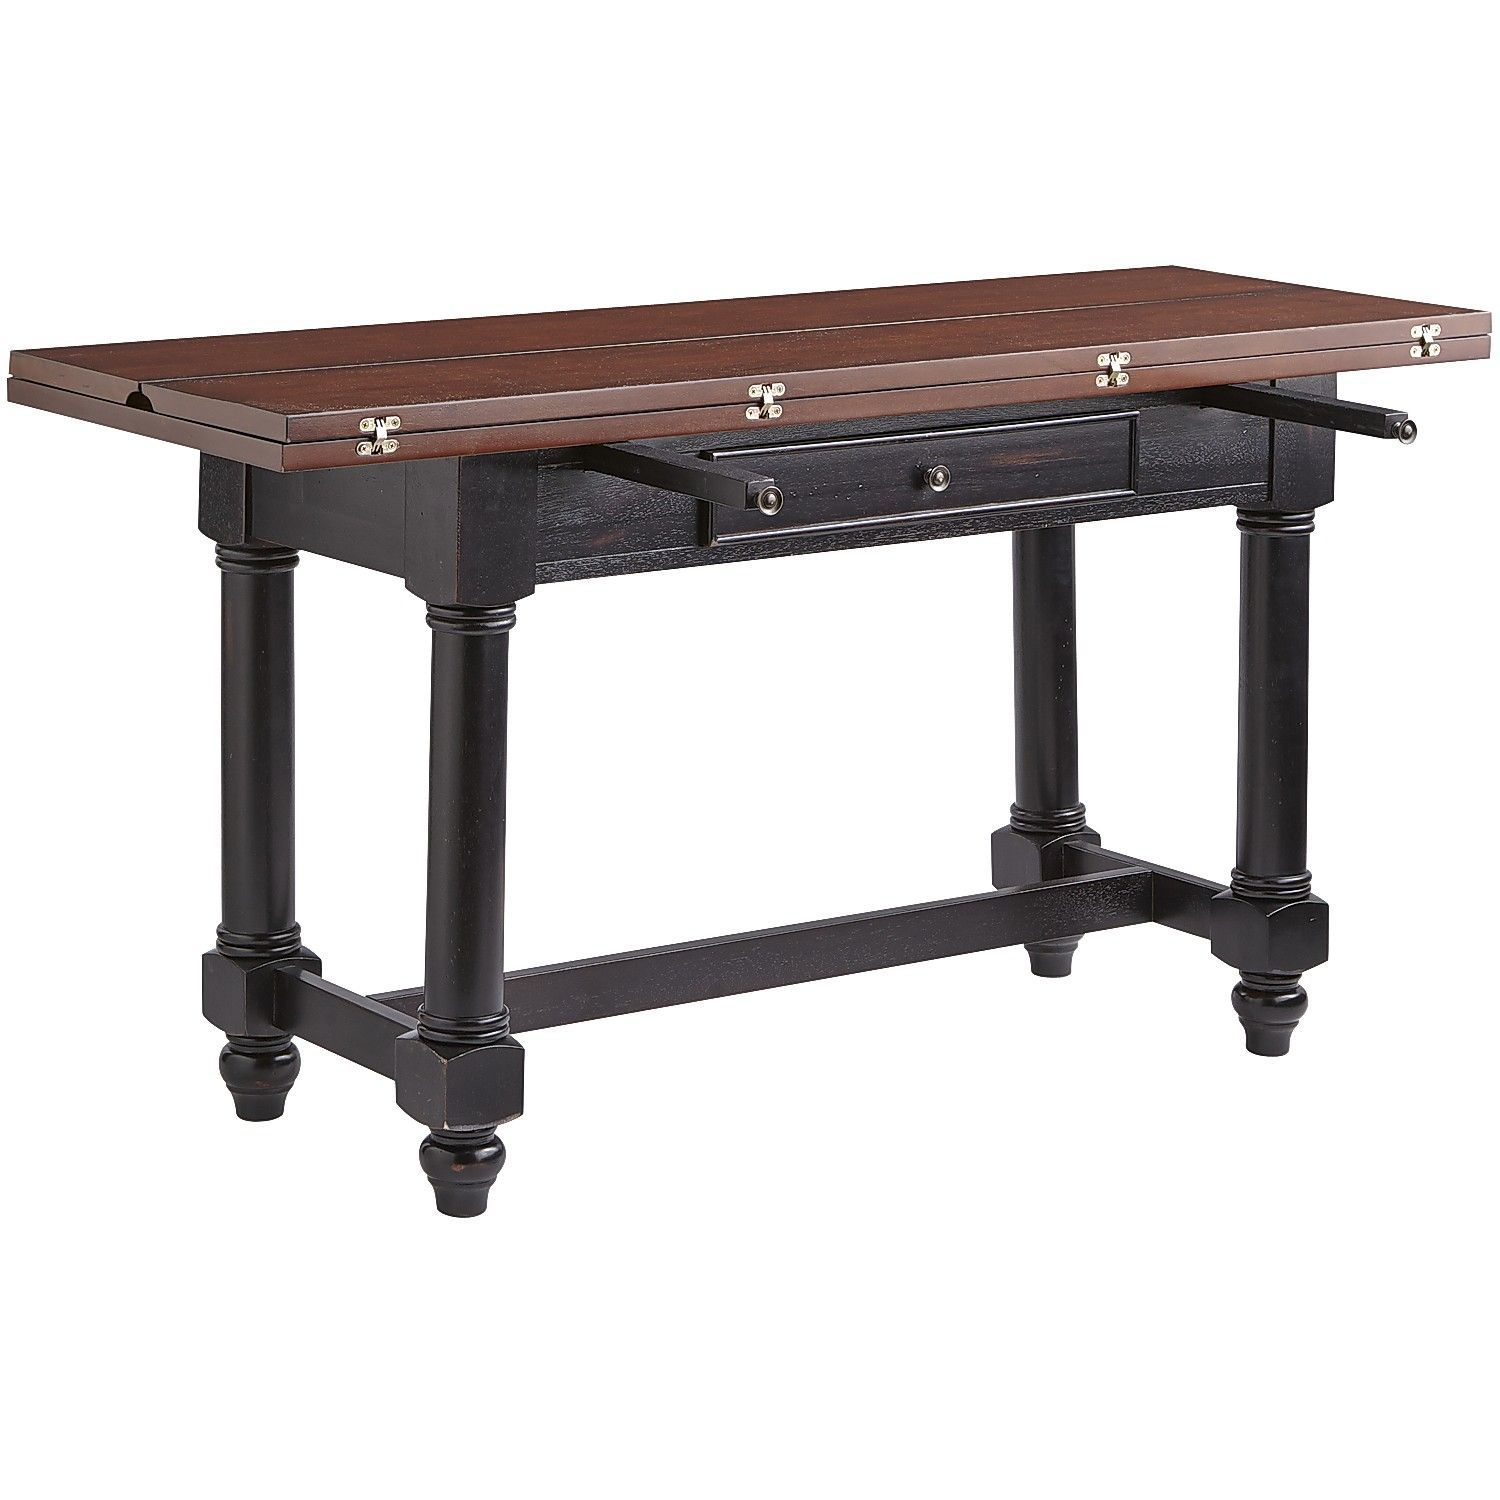 Blake Drop Leaf Table   Pier 1 Leaves Fold Over Top, With Support Poles That